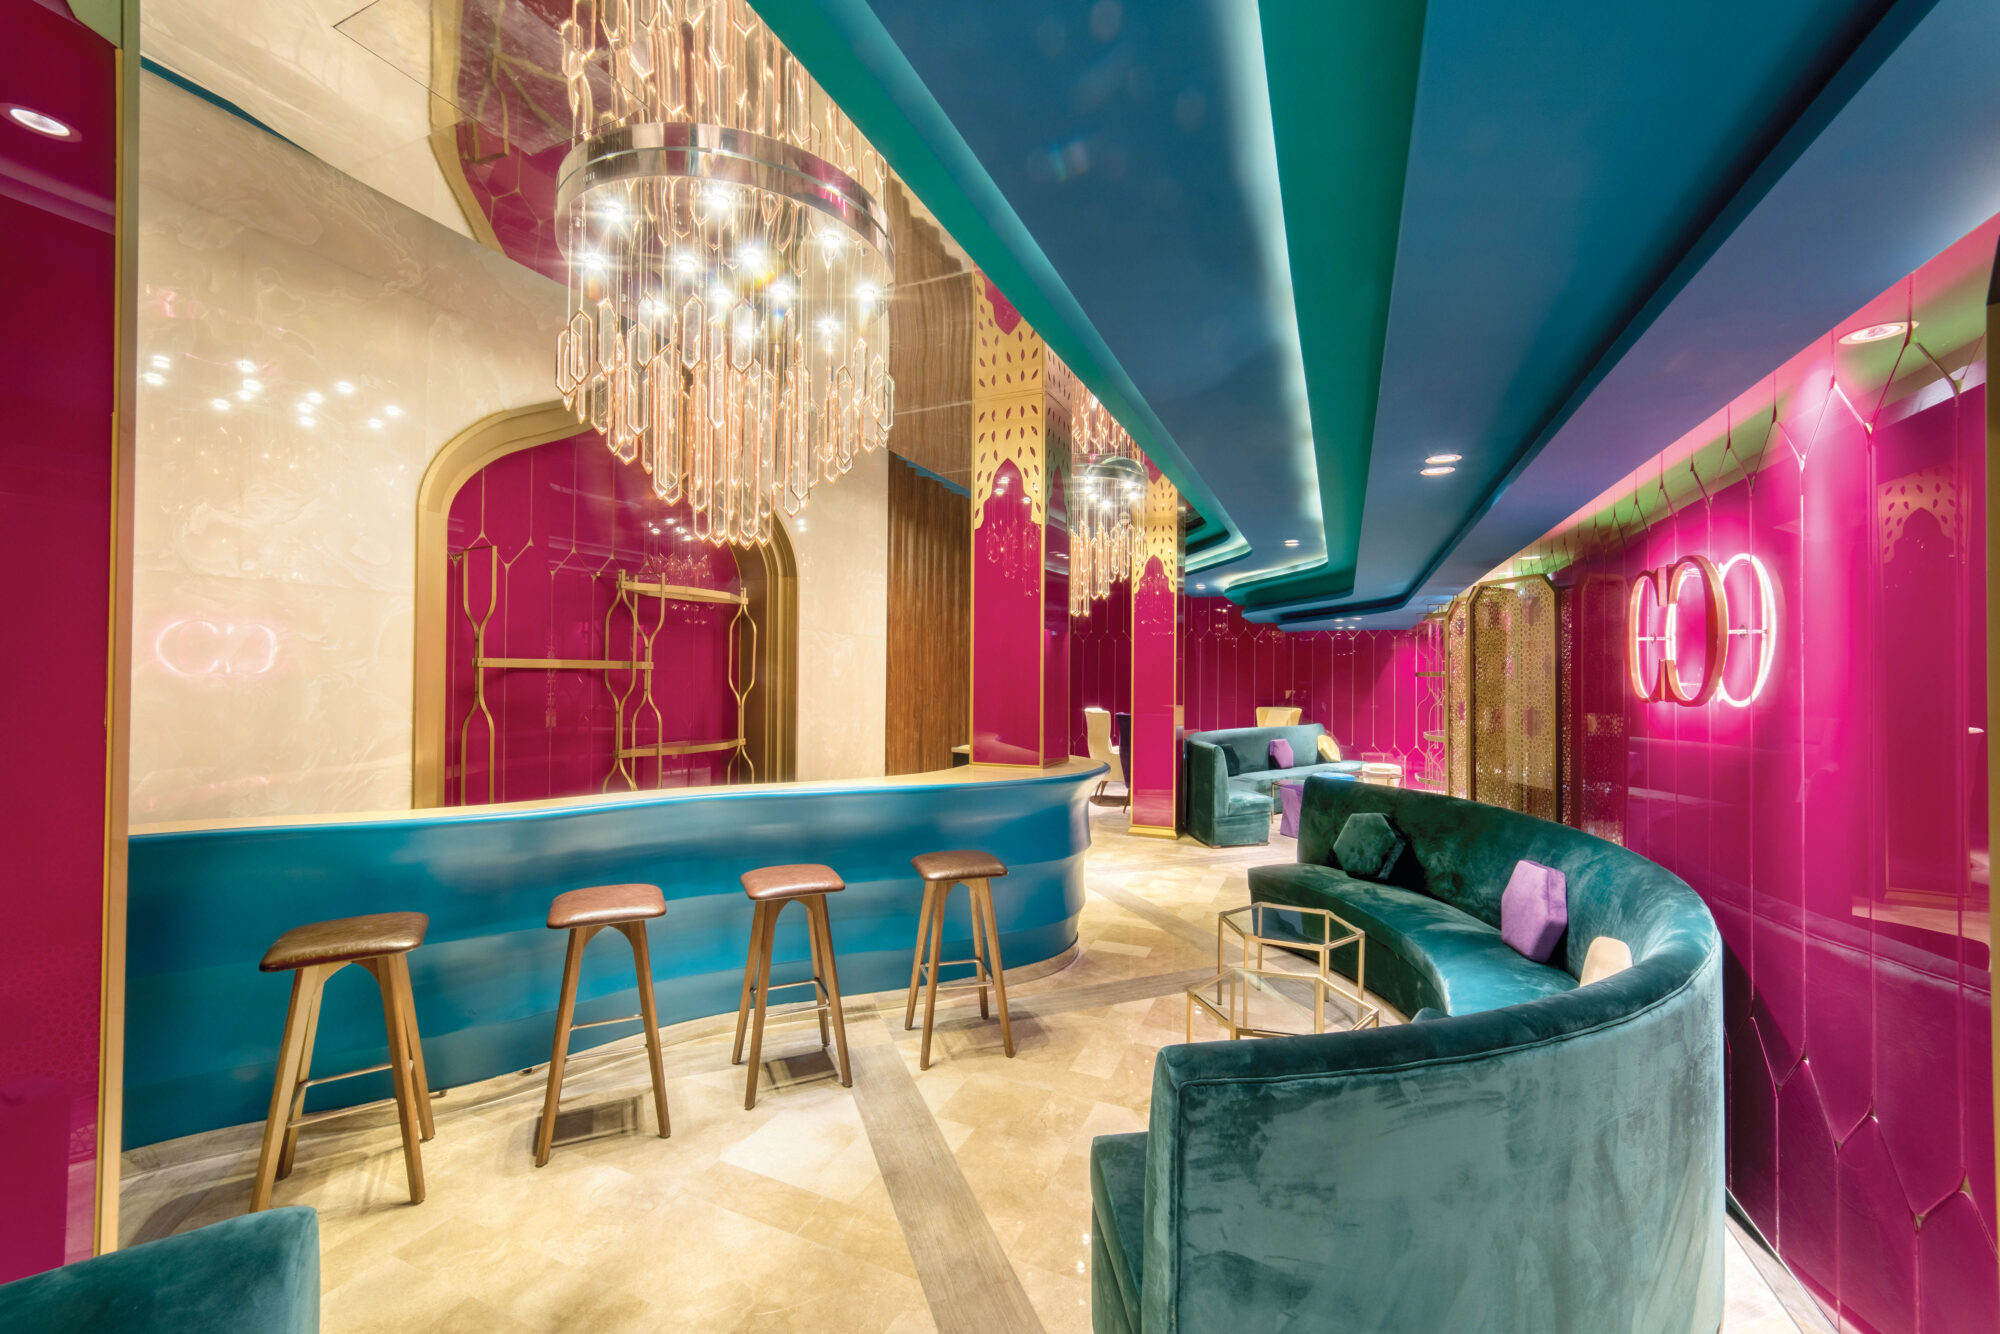 teal and pink interiors